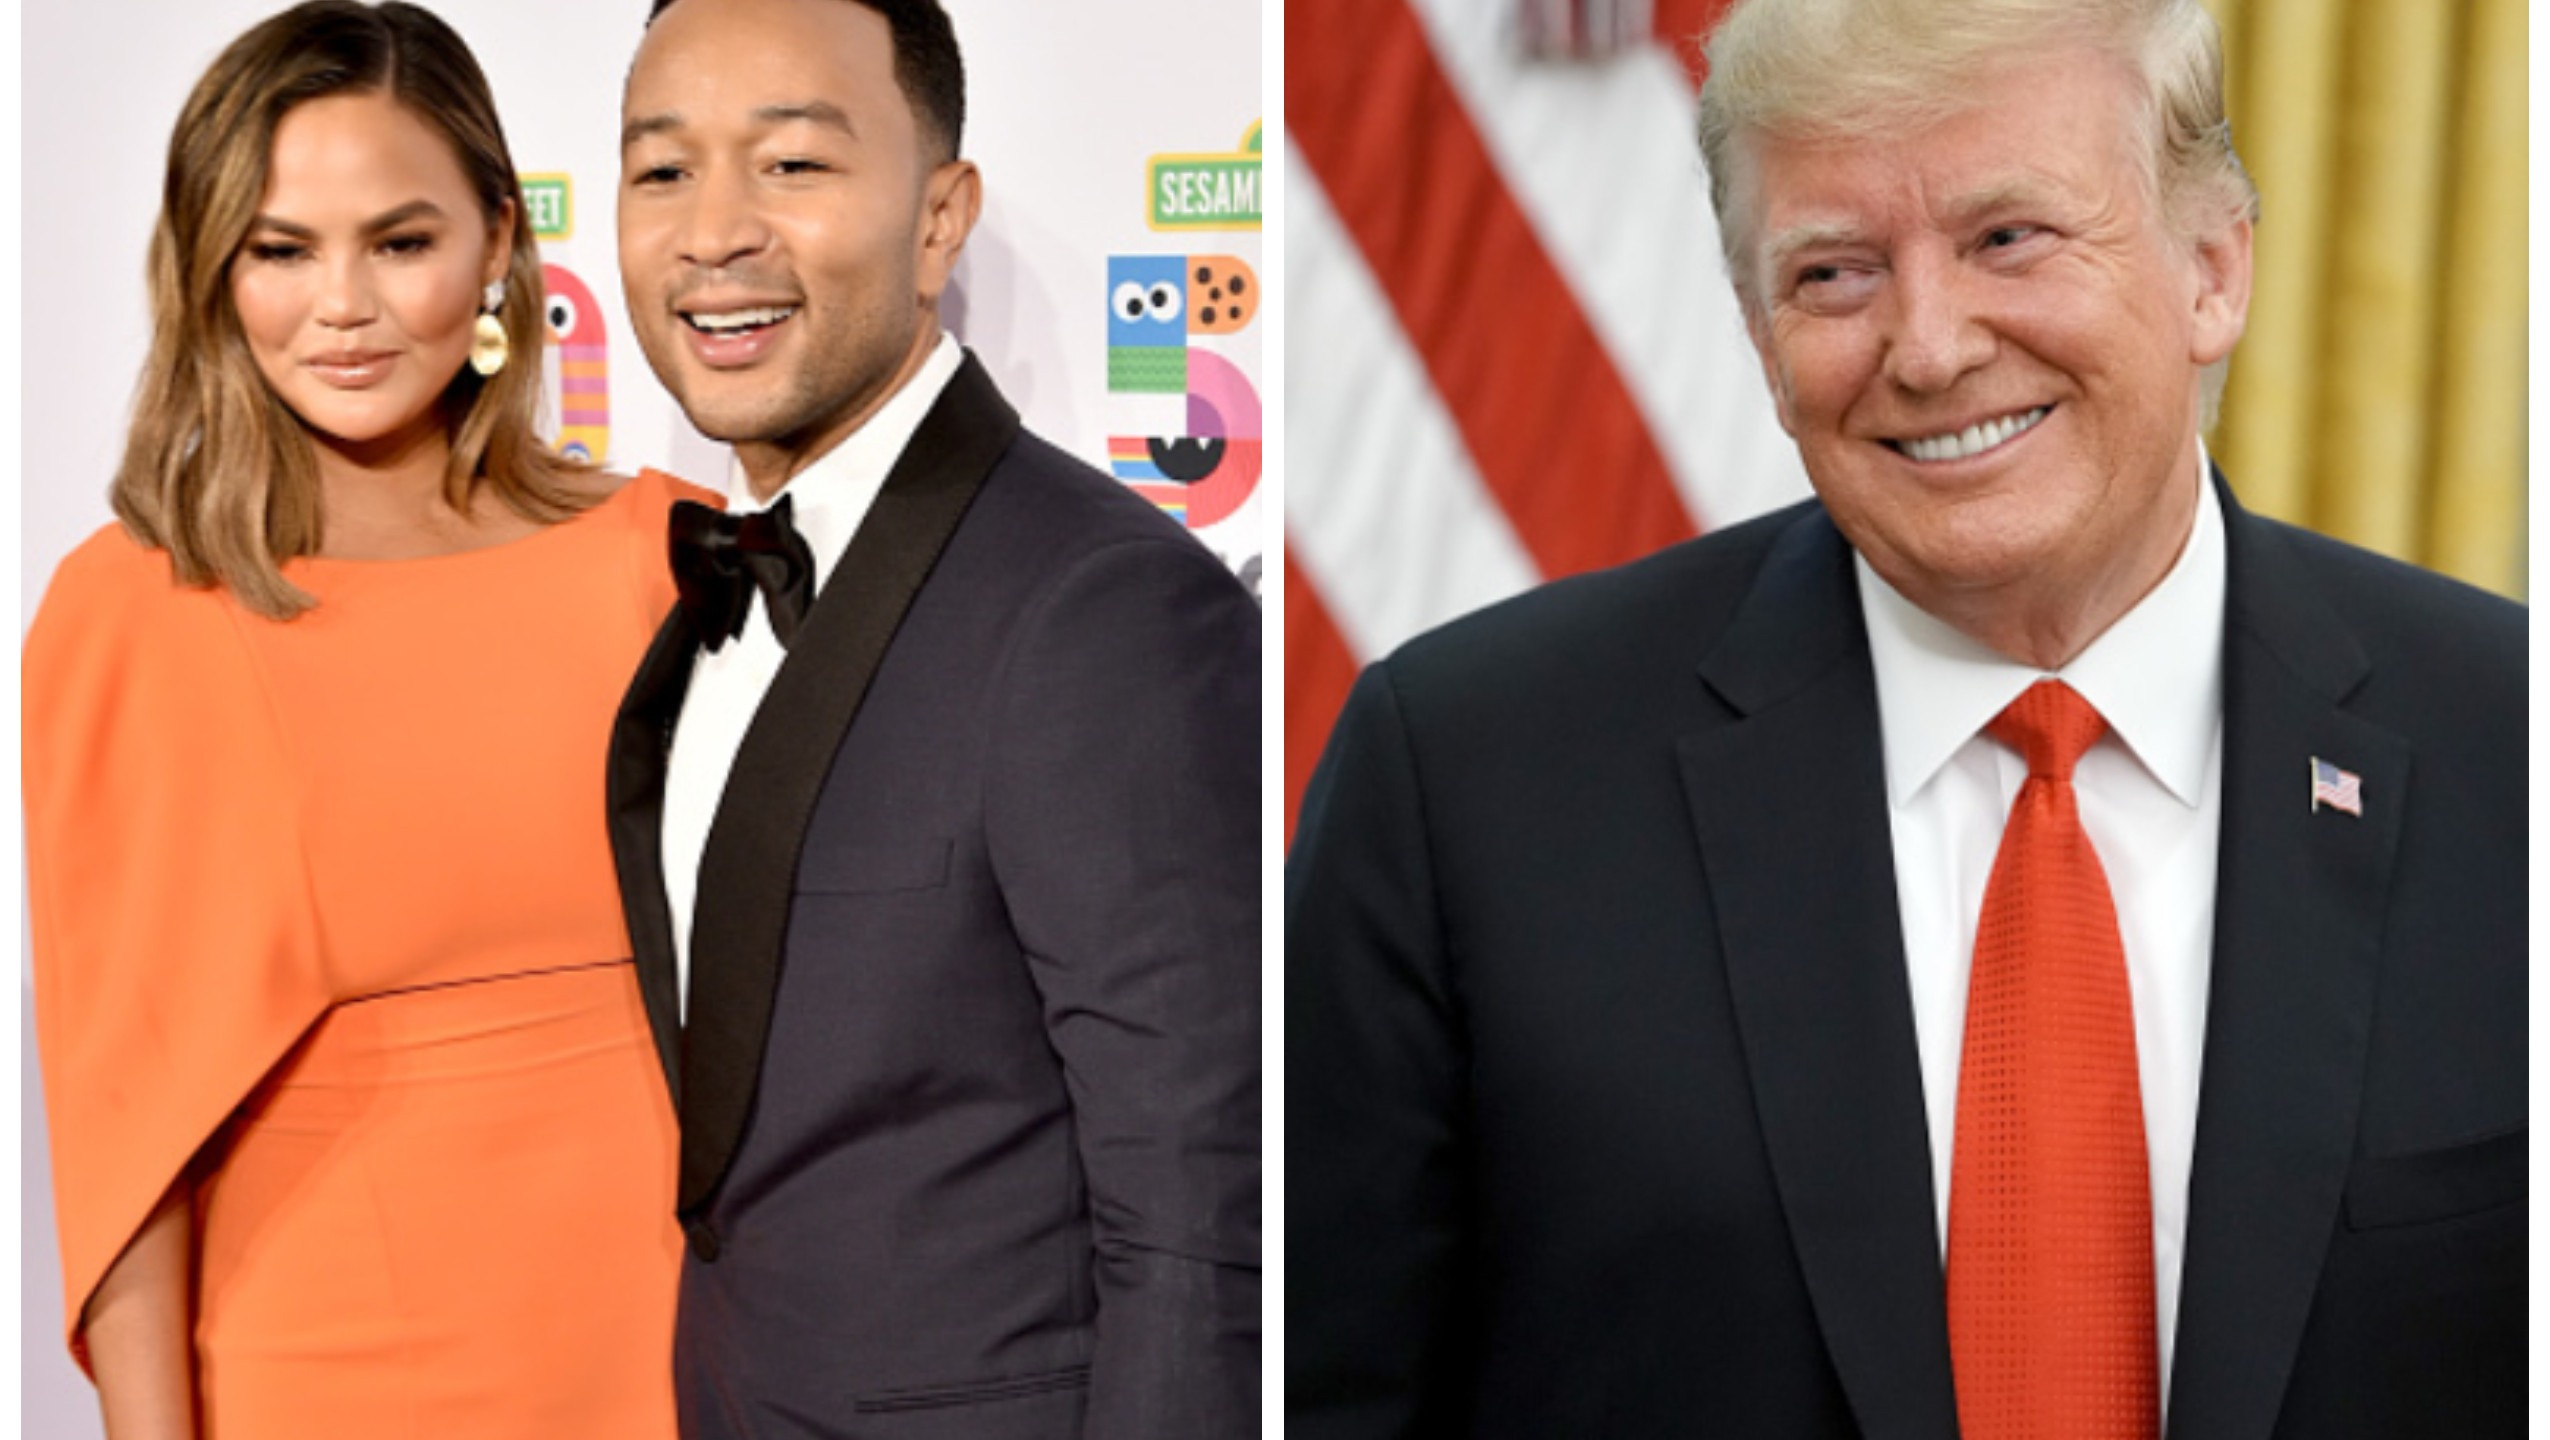 Trump Attacked John Legend And Chrissy Teigen On Twitter